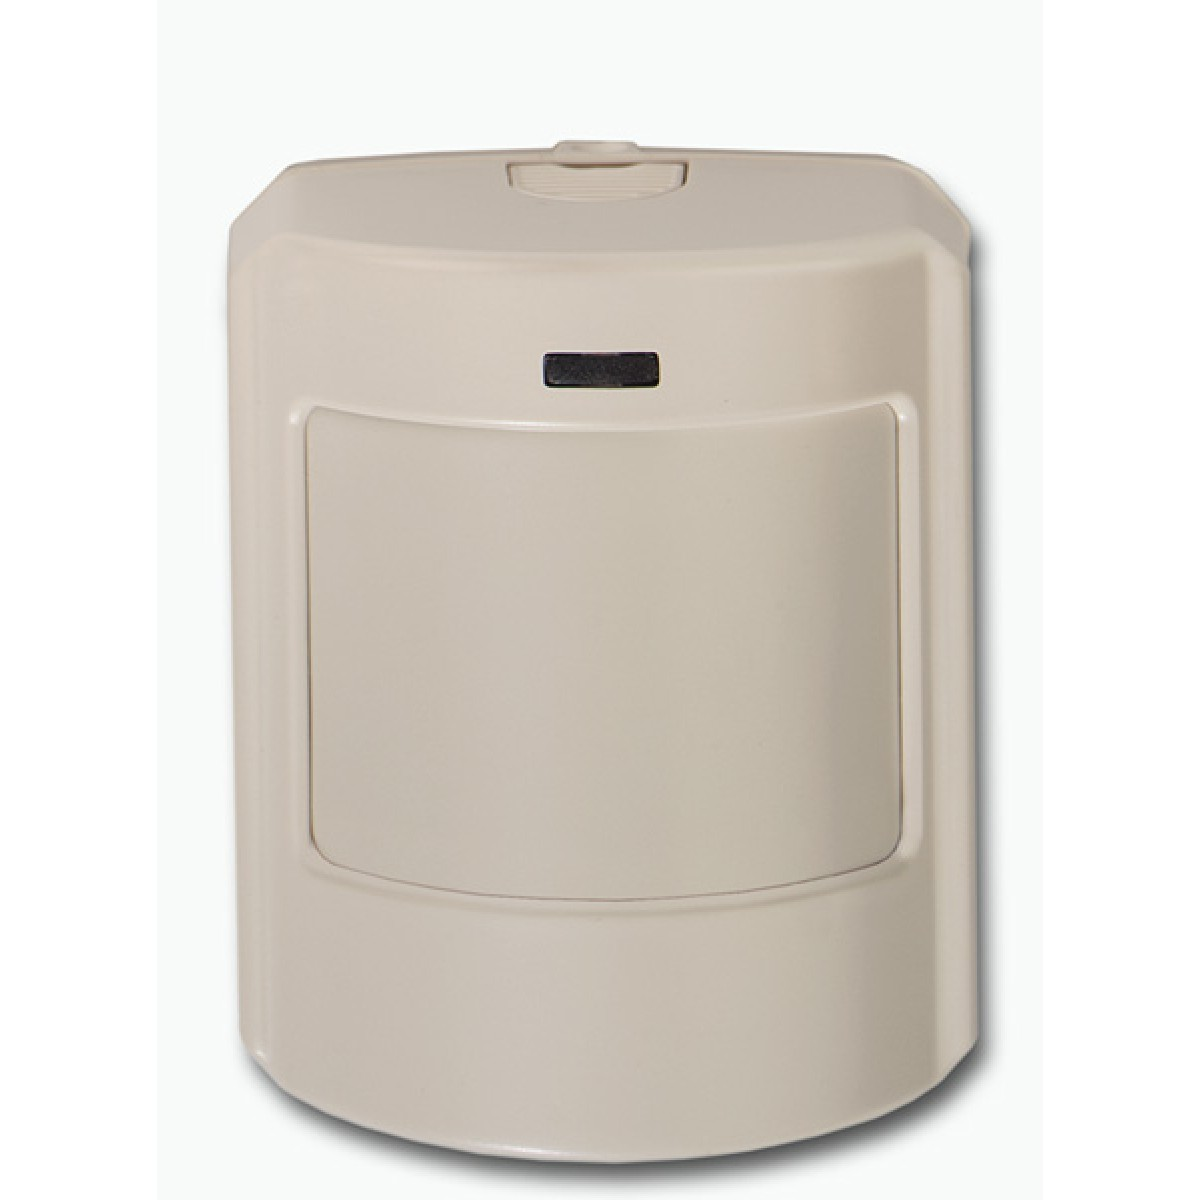 ITI 60-639-43-EUR Wireless Passive Infrared (PIR) Sensor Motion Detector